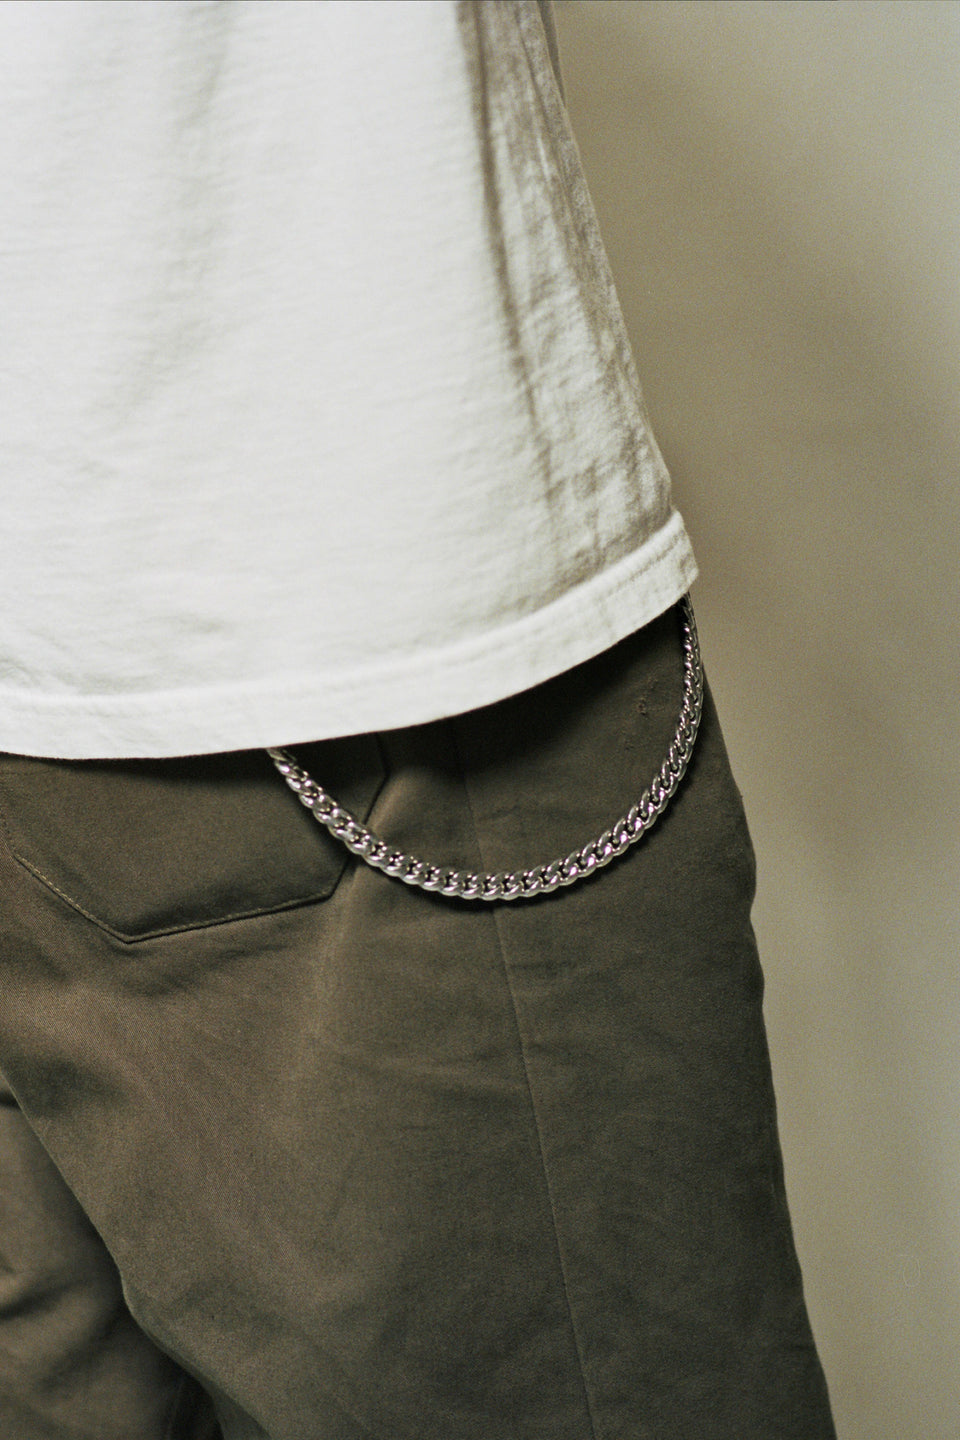 The Silver Stone Cuban Wallet Chain